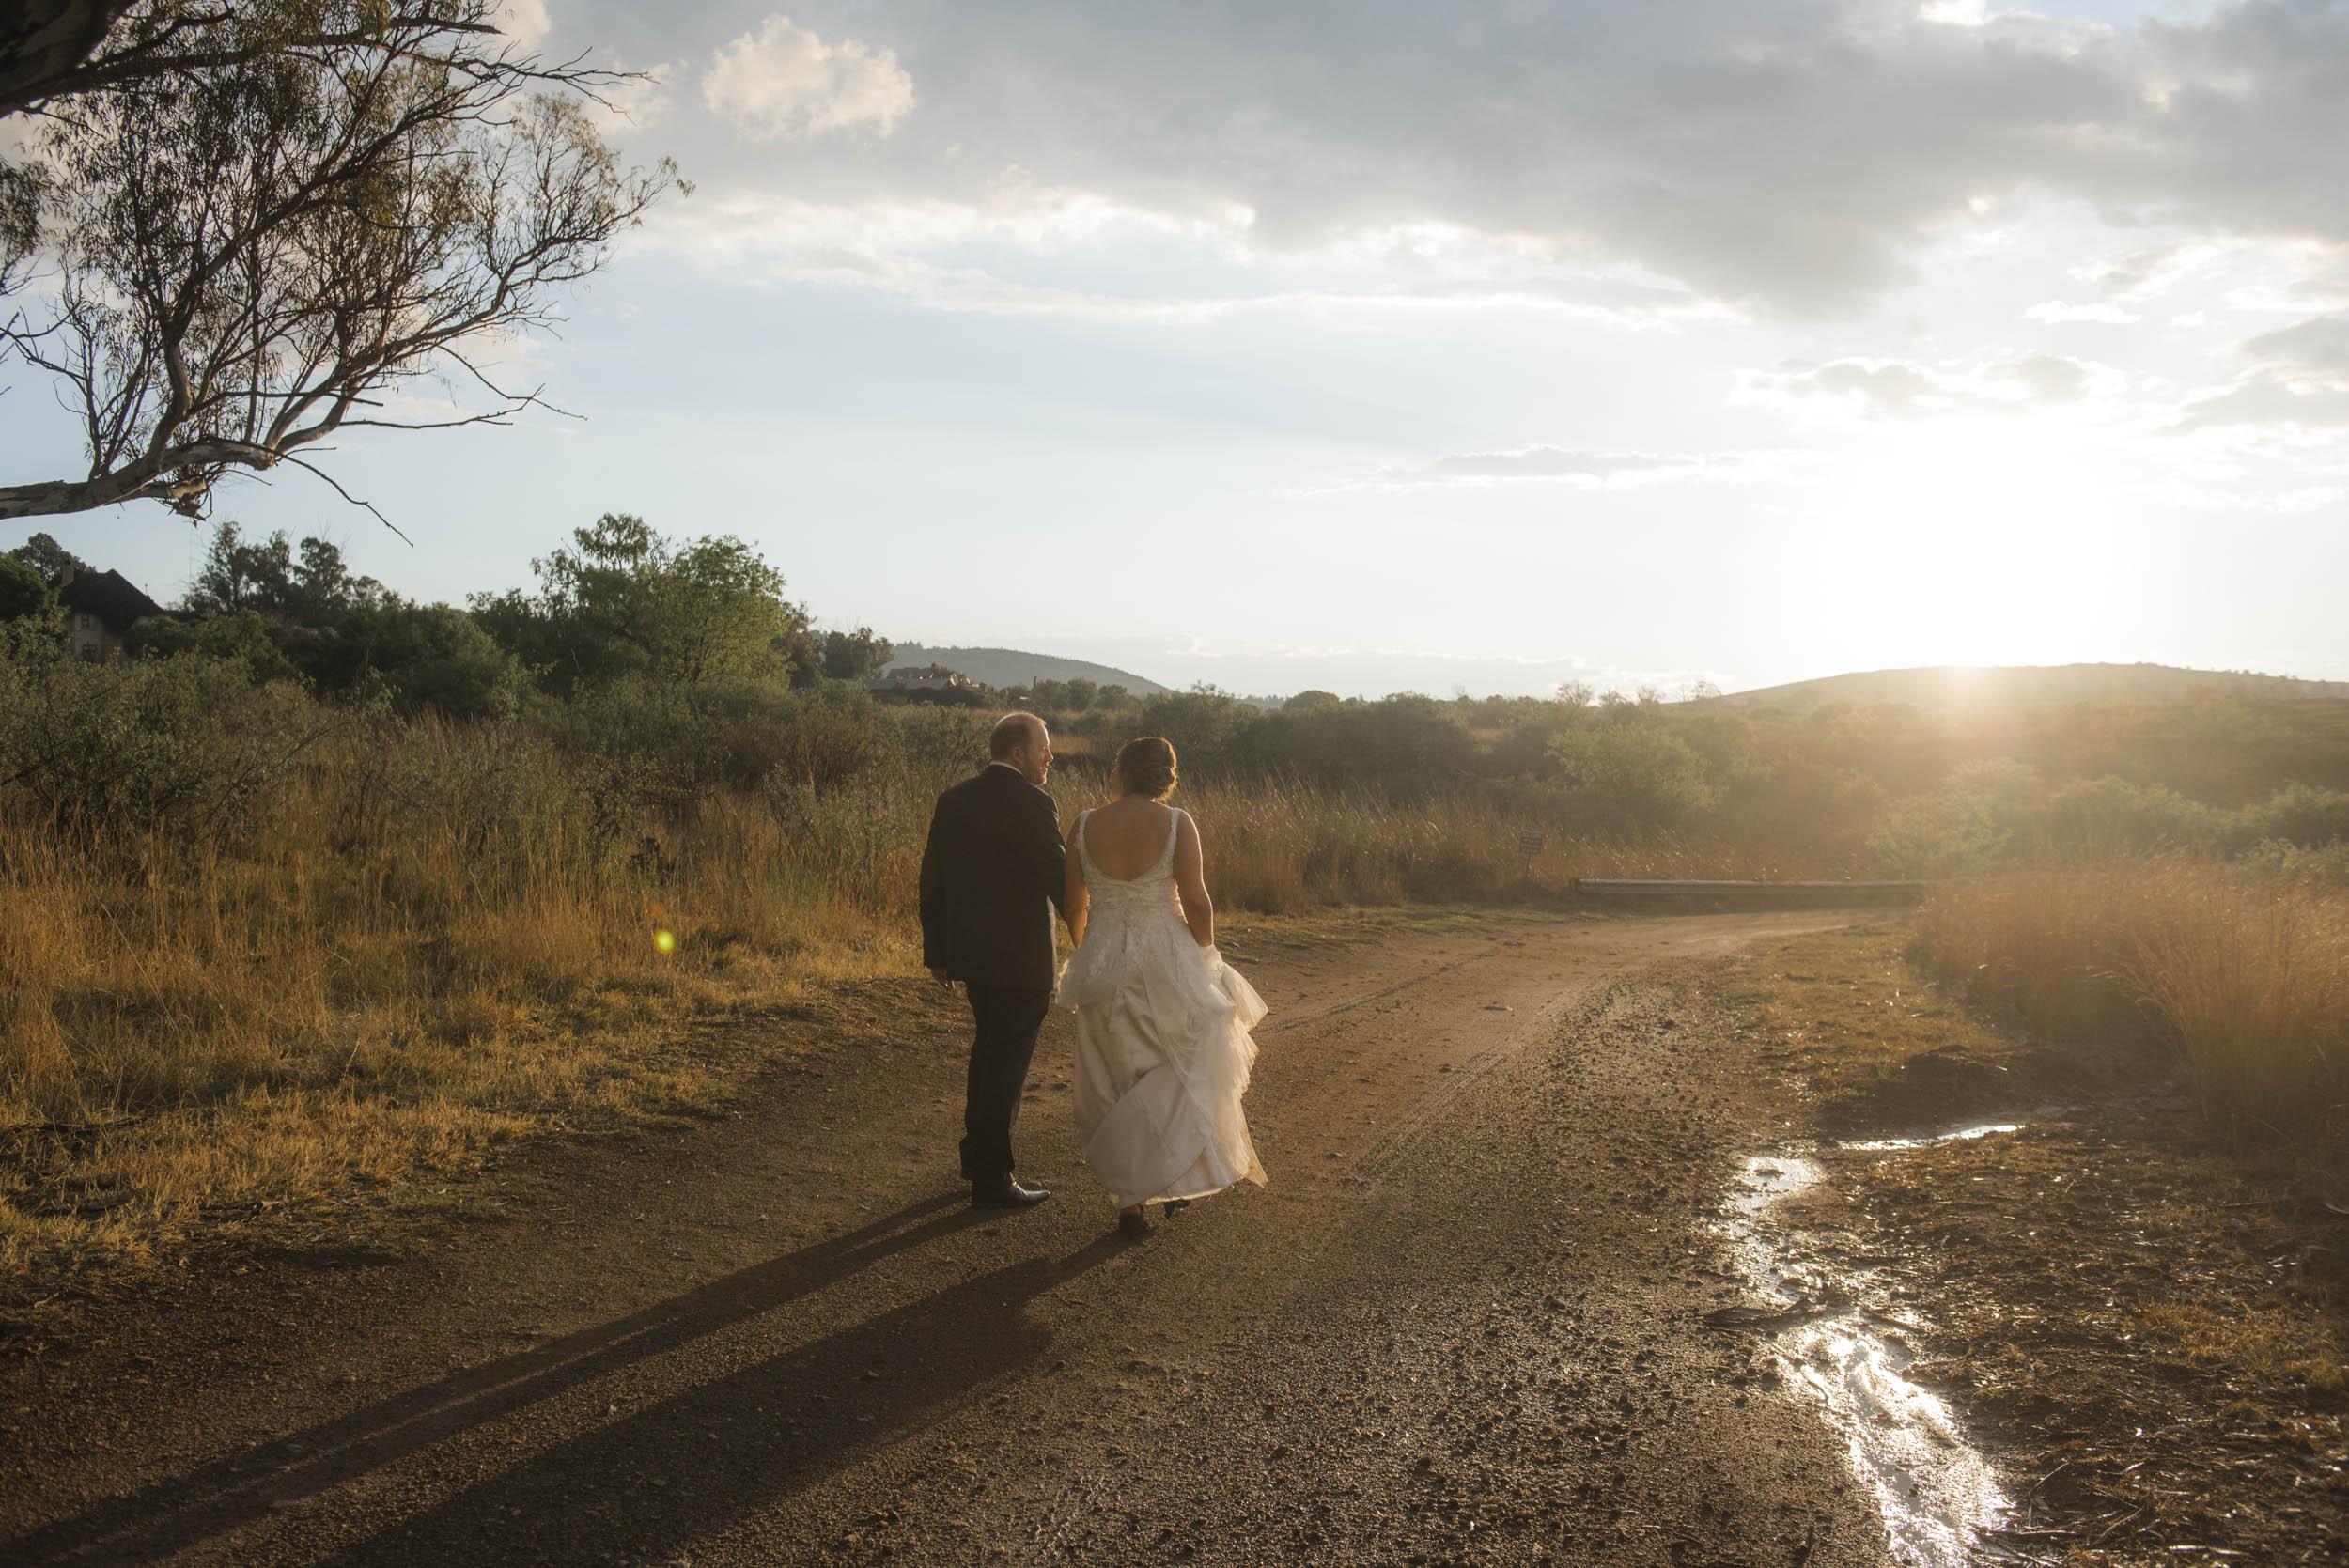 064-wedding-photographer-johannesburg.JPG